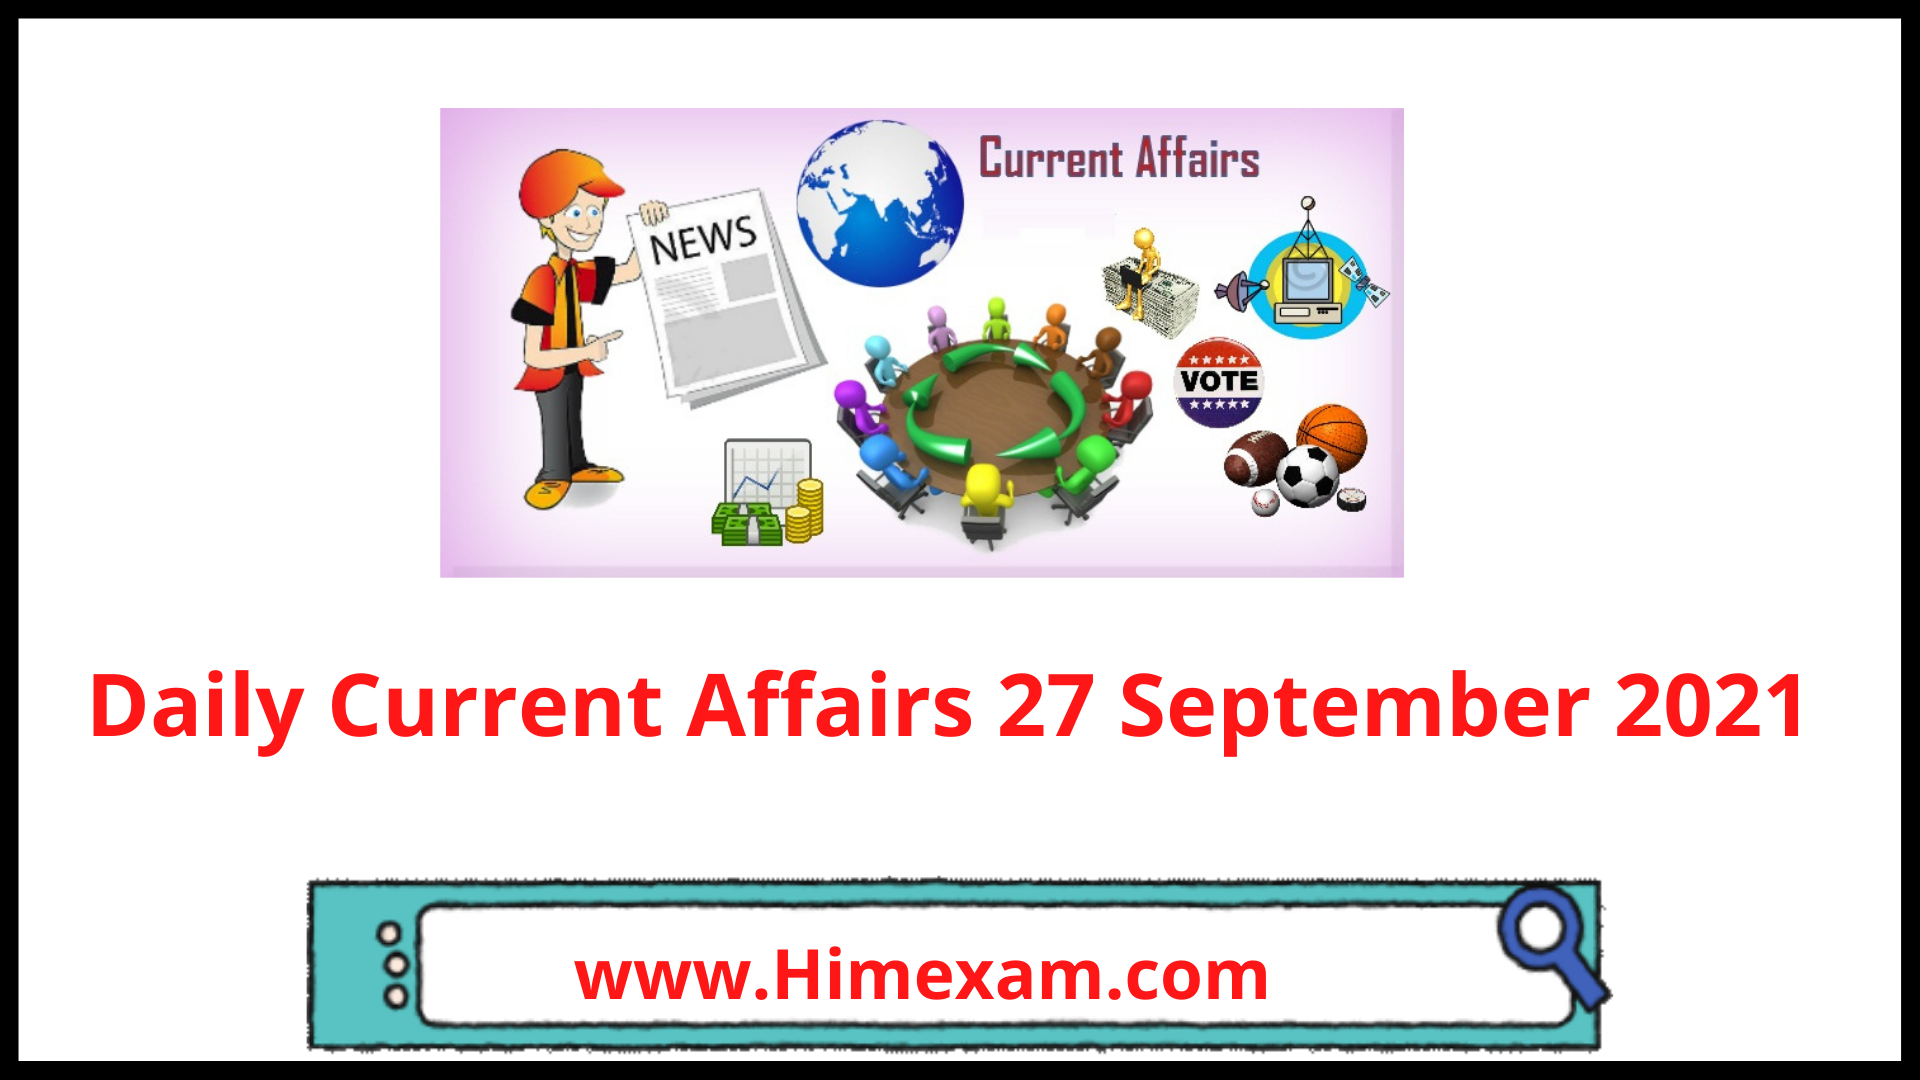 Daily Current Affairs 27 September 2021